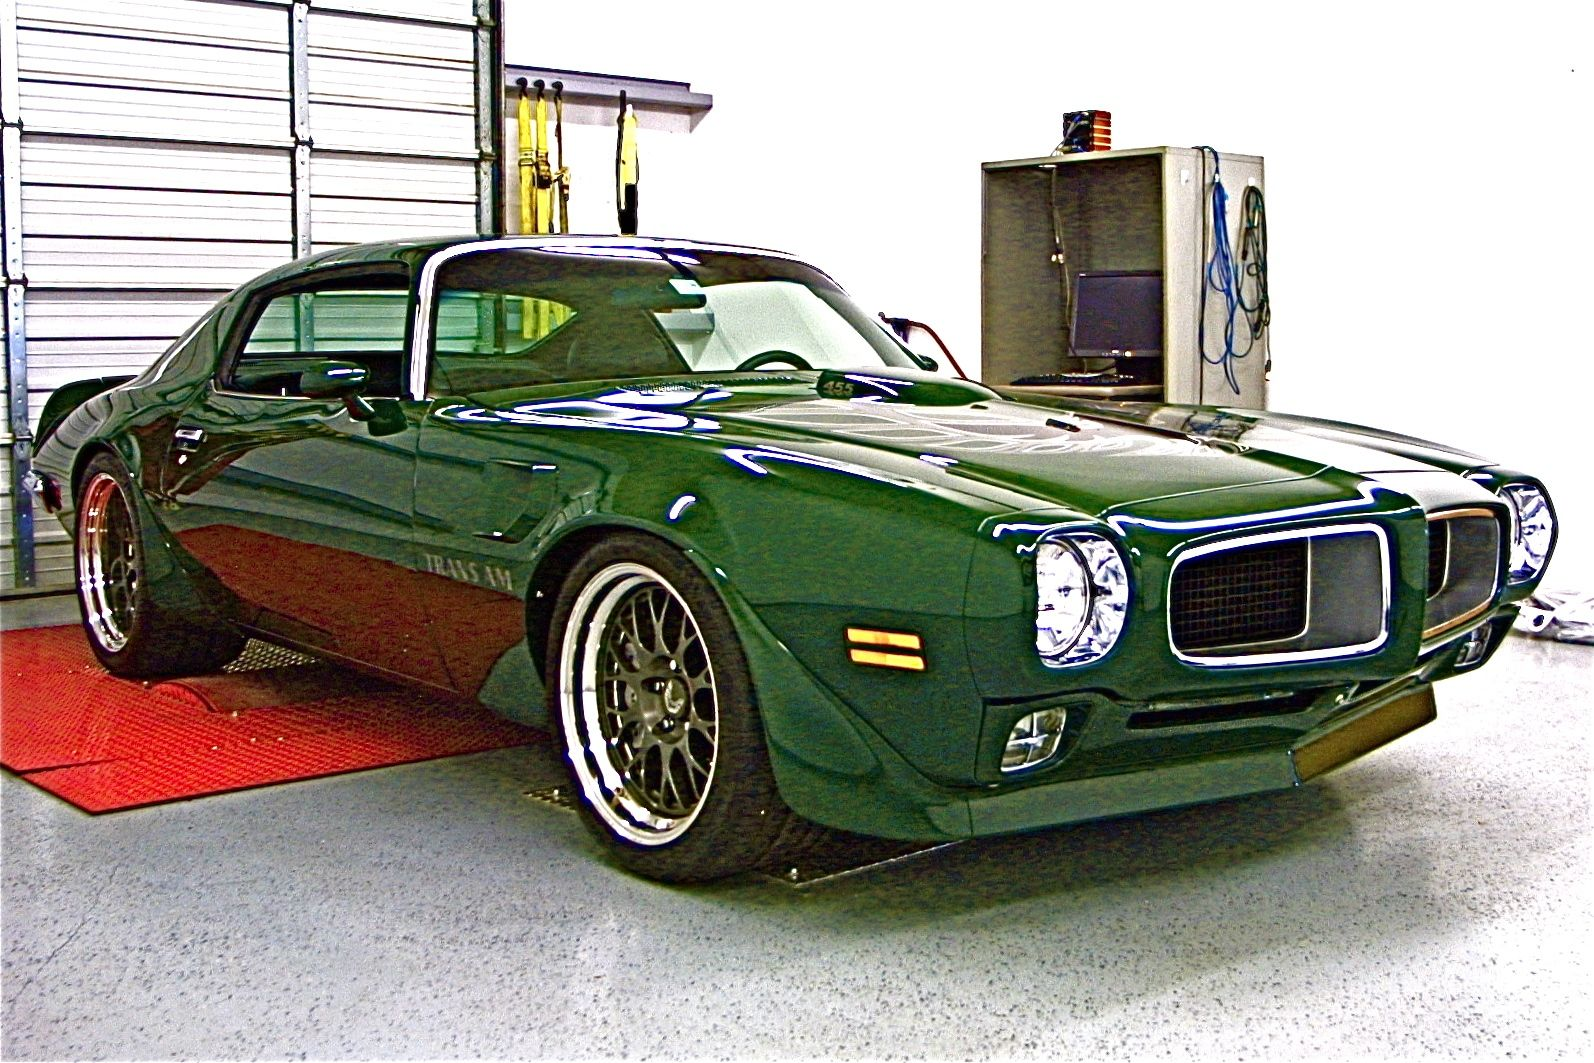 Awesome 70s Pontiac Firebird Trans Am RestoMod | ATX Car Pictures ...